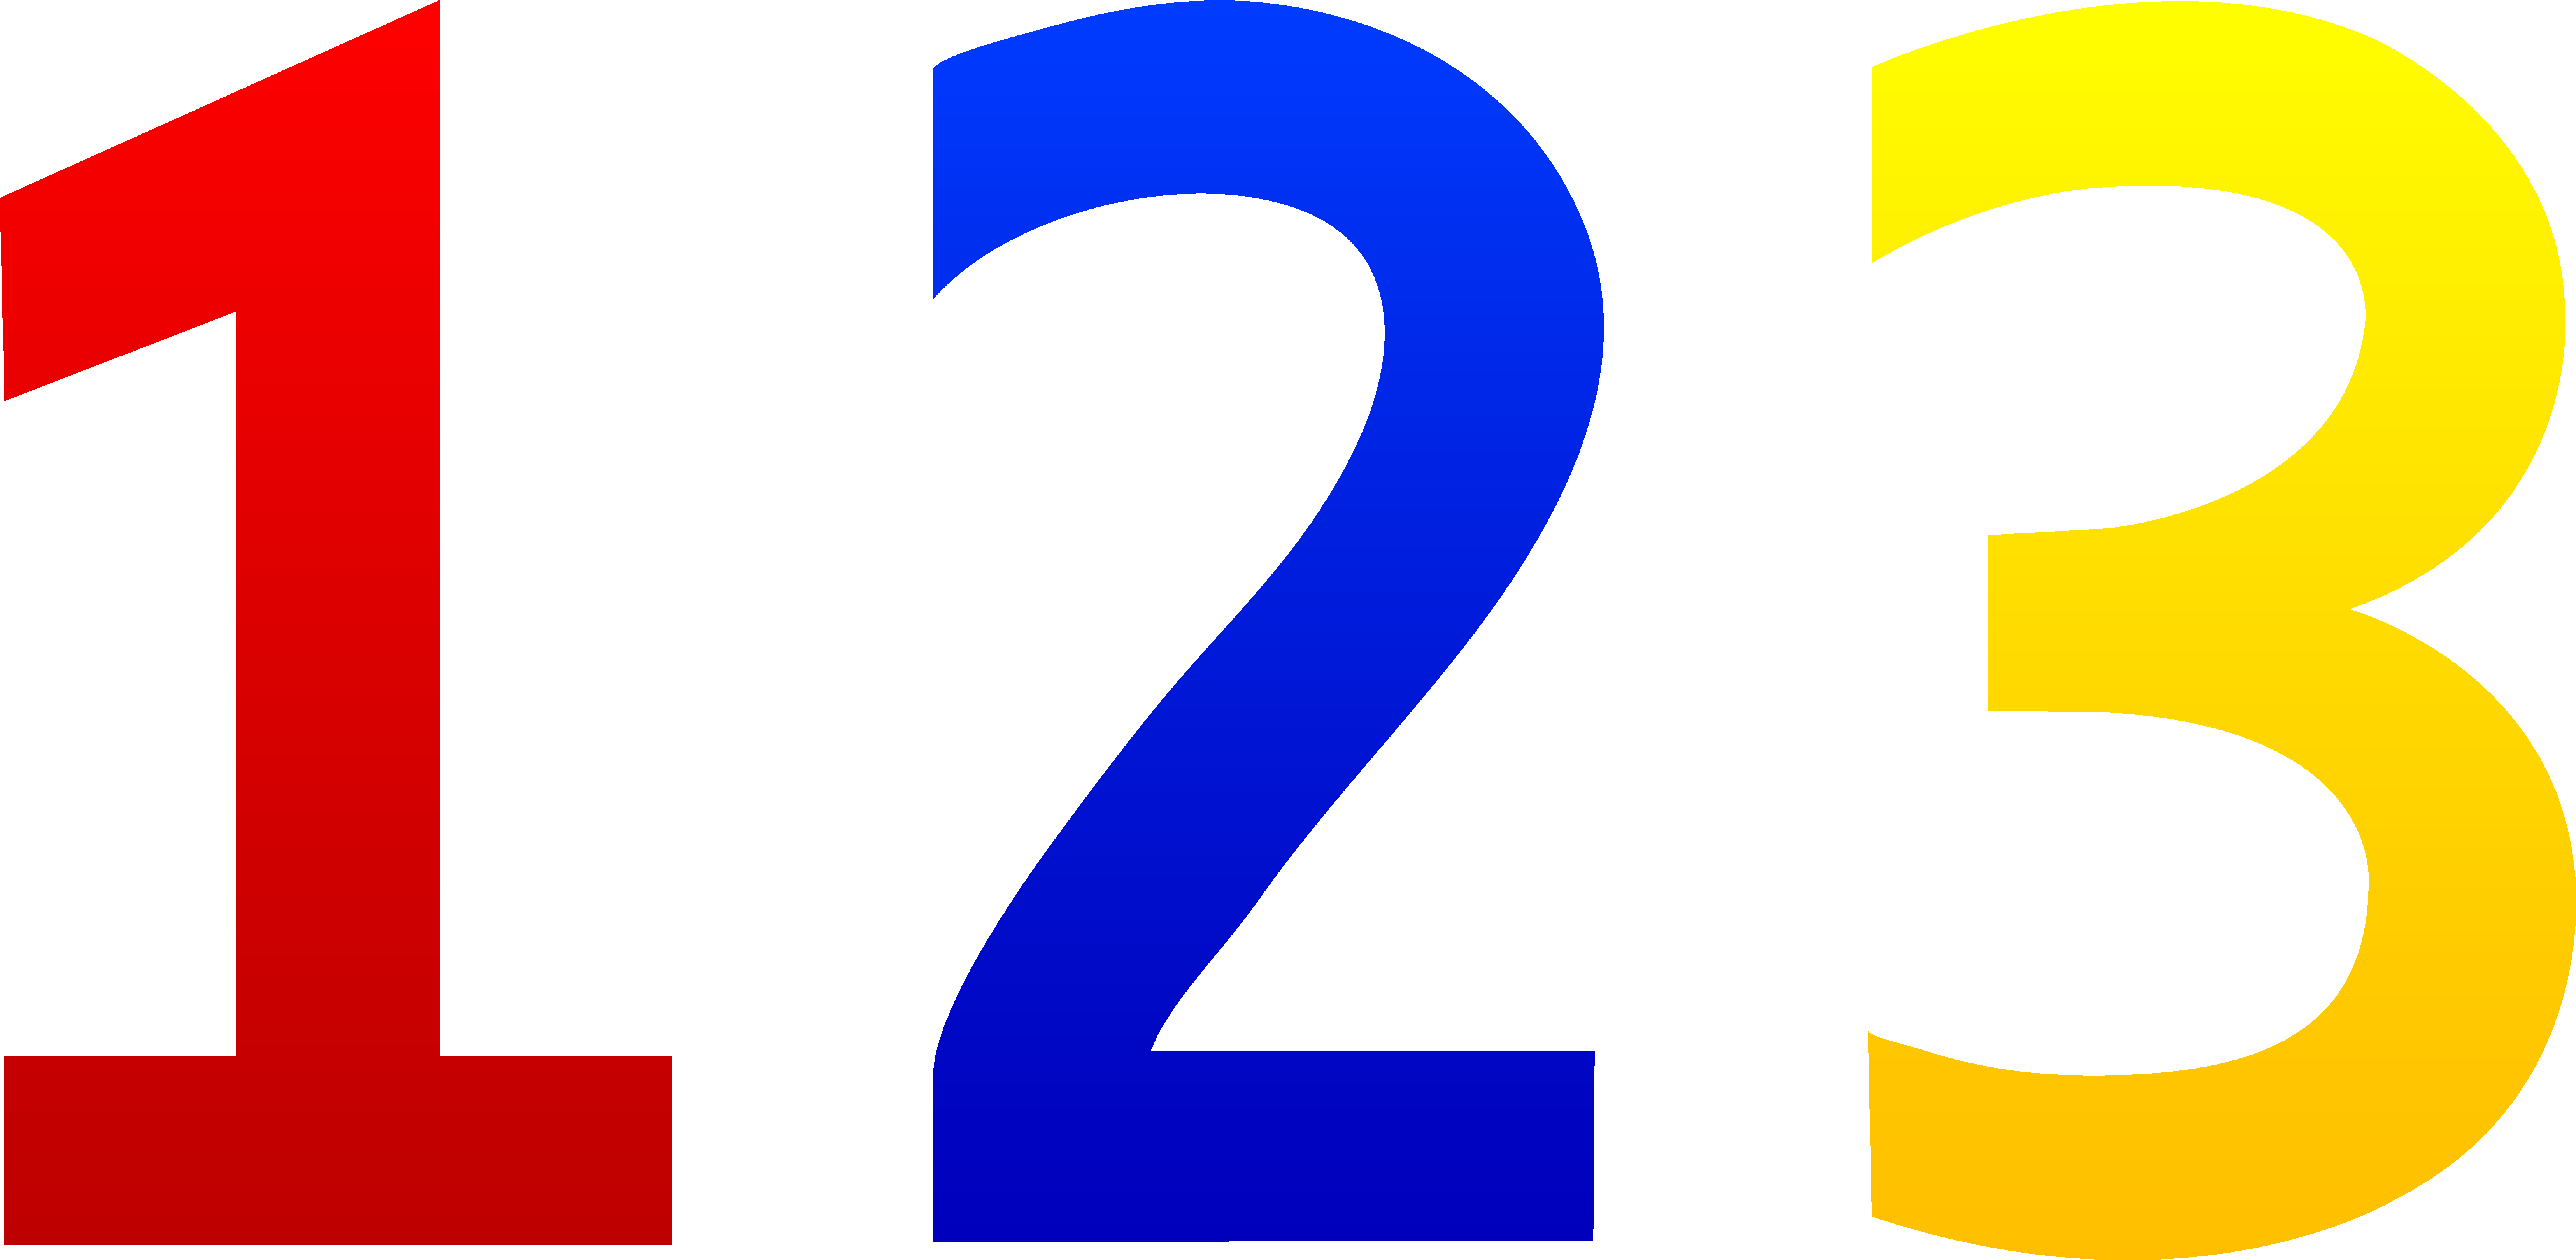 Numbers Clipart 0